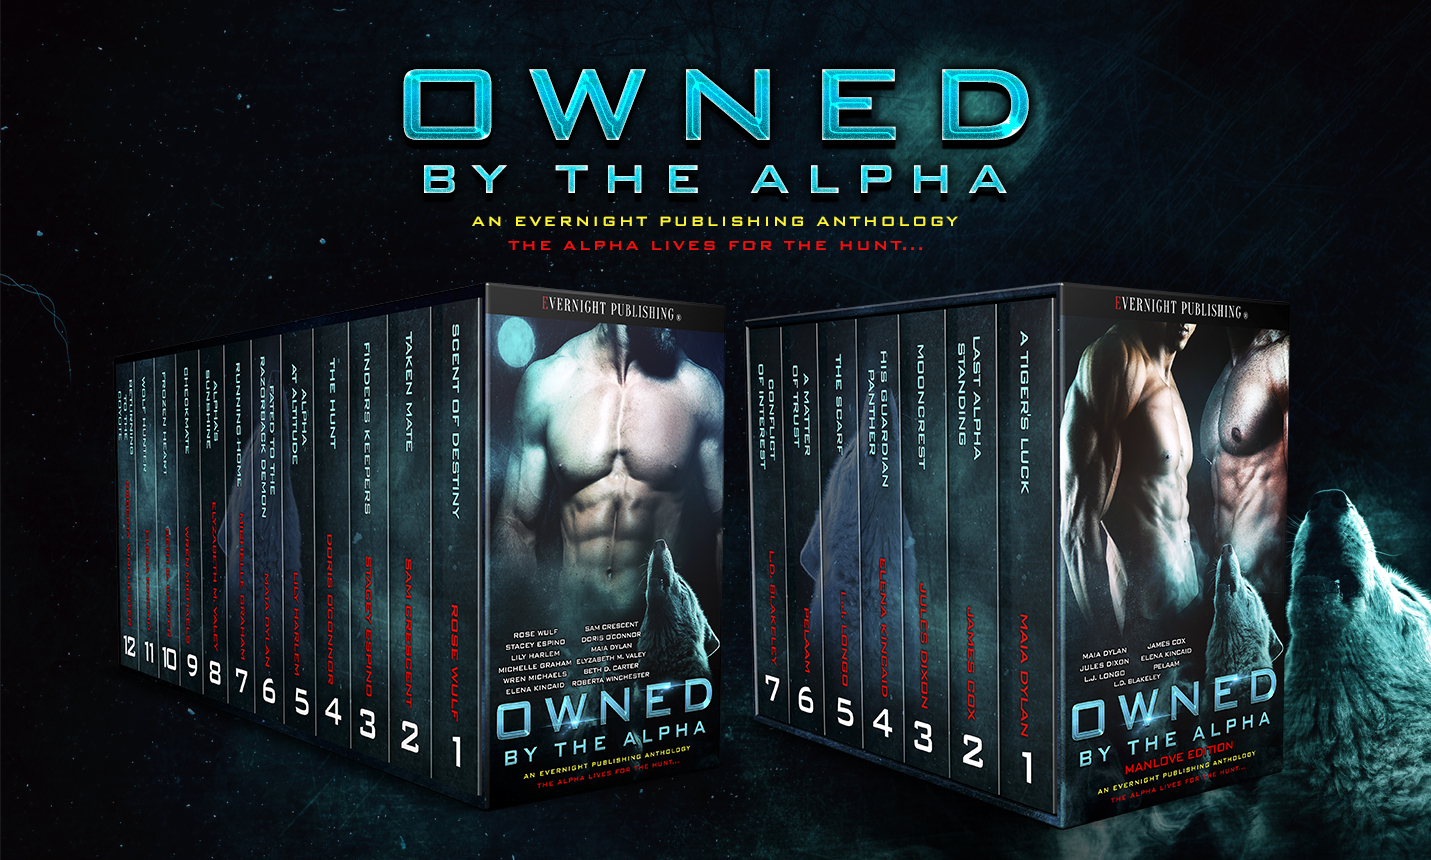 owned-by-the-alpha-antho1-evernightpublishing2017-2boxset.jpg